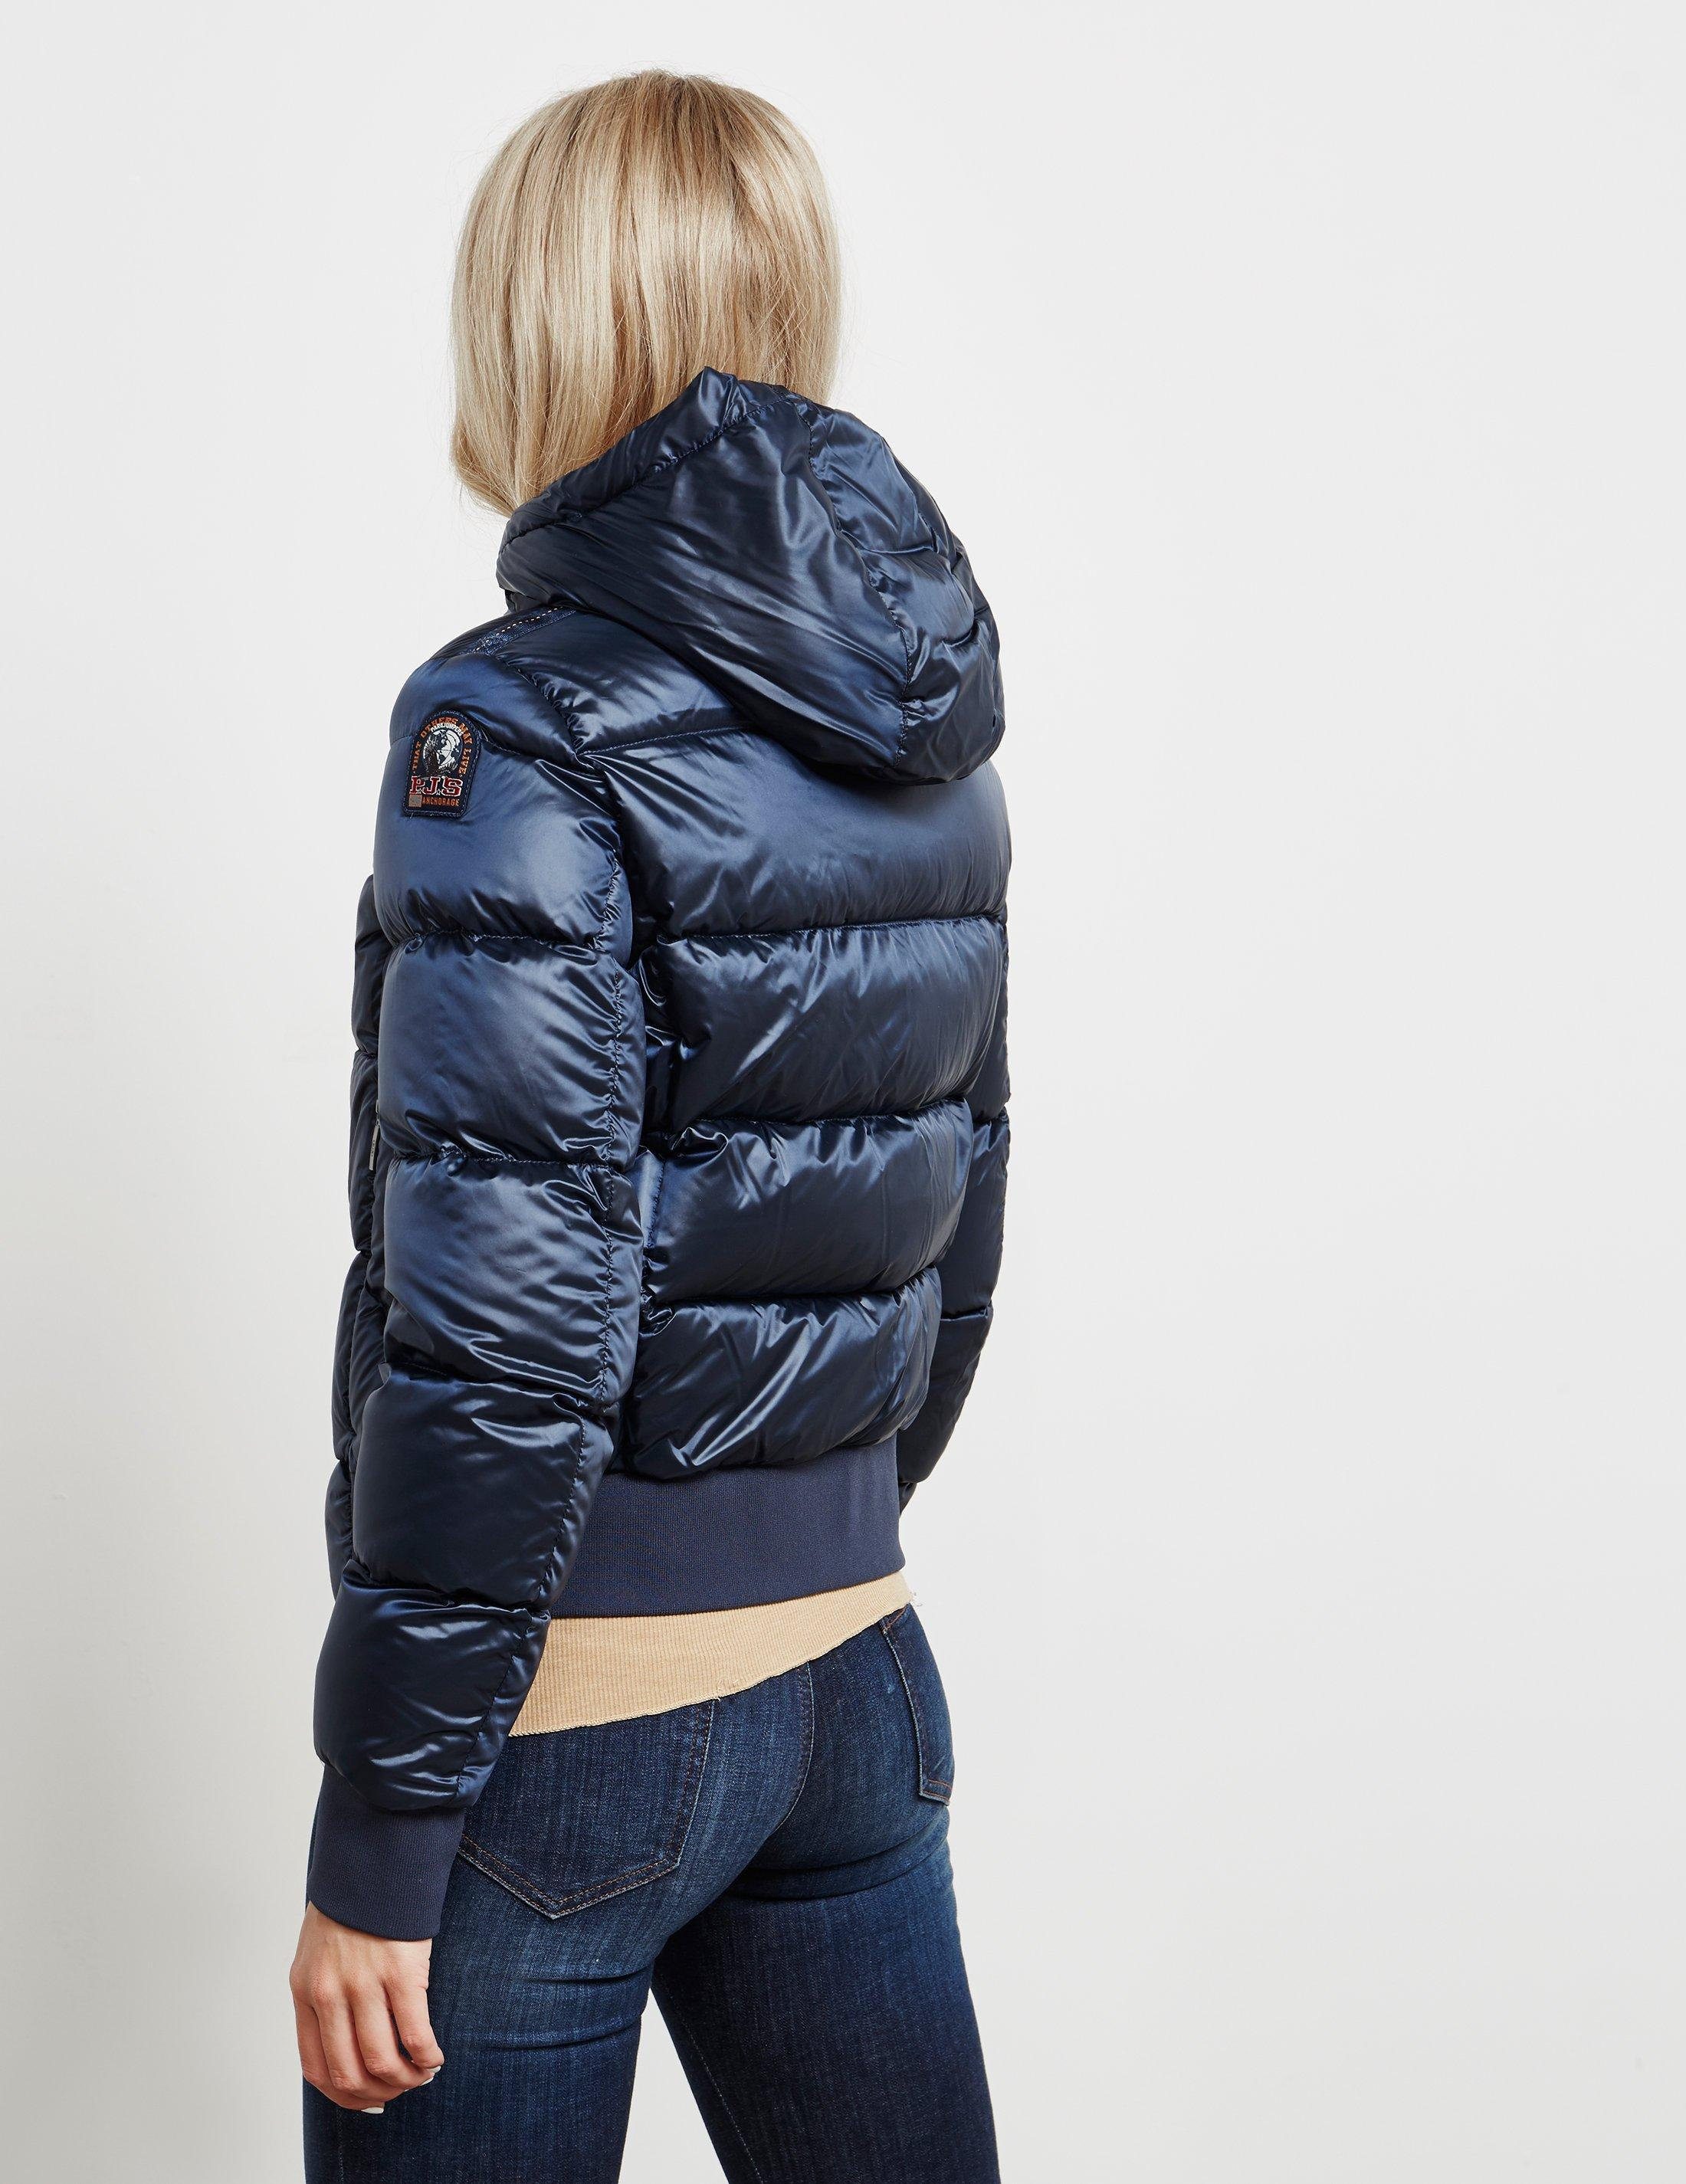 Parajumpers - Womens Mariah Bomber Jacket Blue - Lyst. View fullscreen